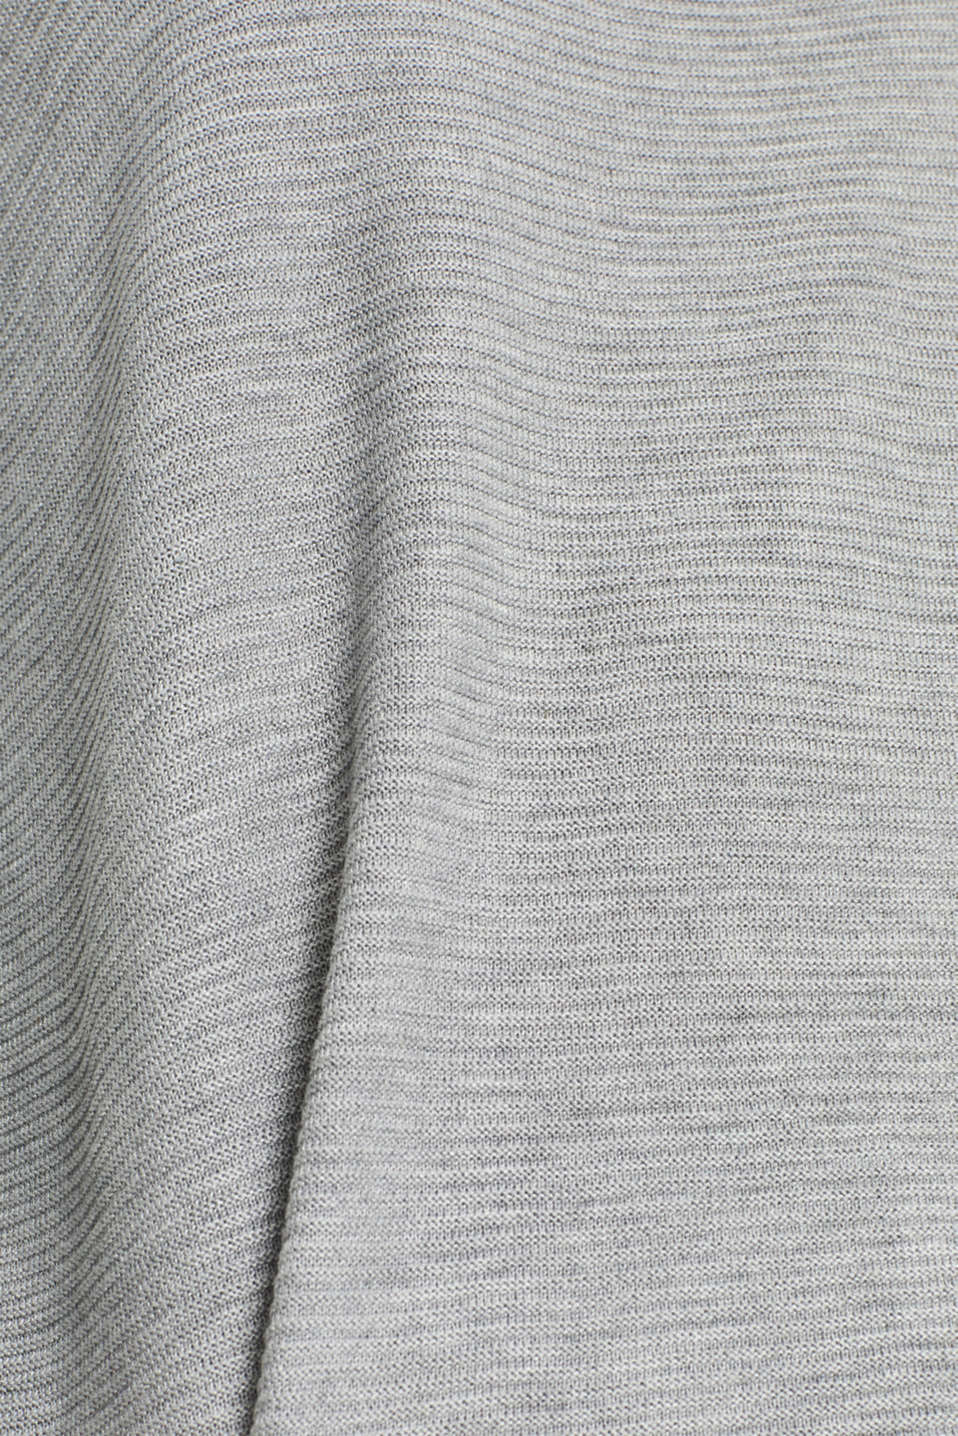 Knit dress with a ribbed texture, MEDIUM GREY 5, detail image number 4